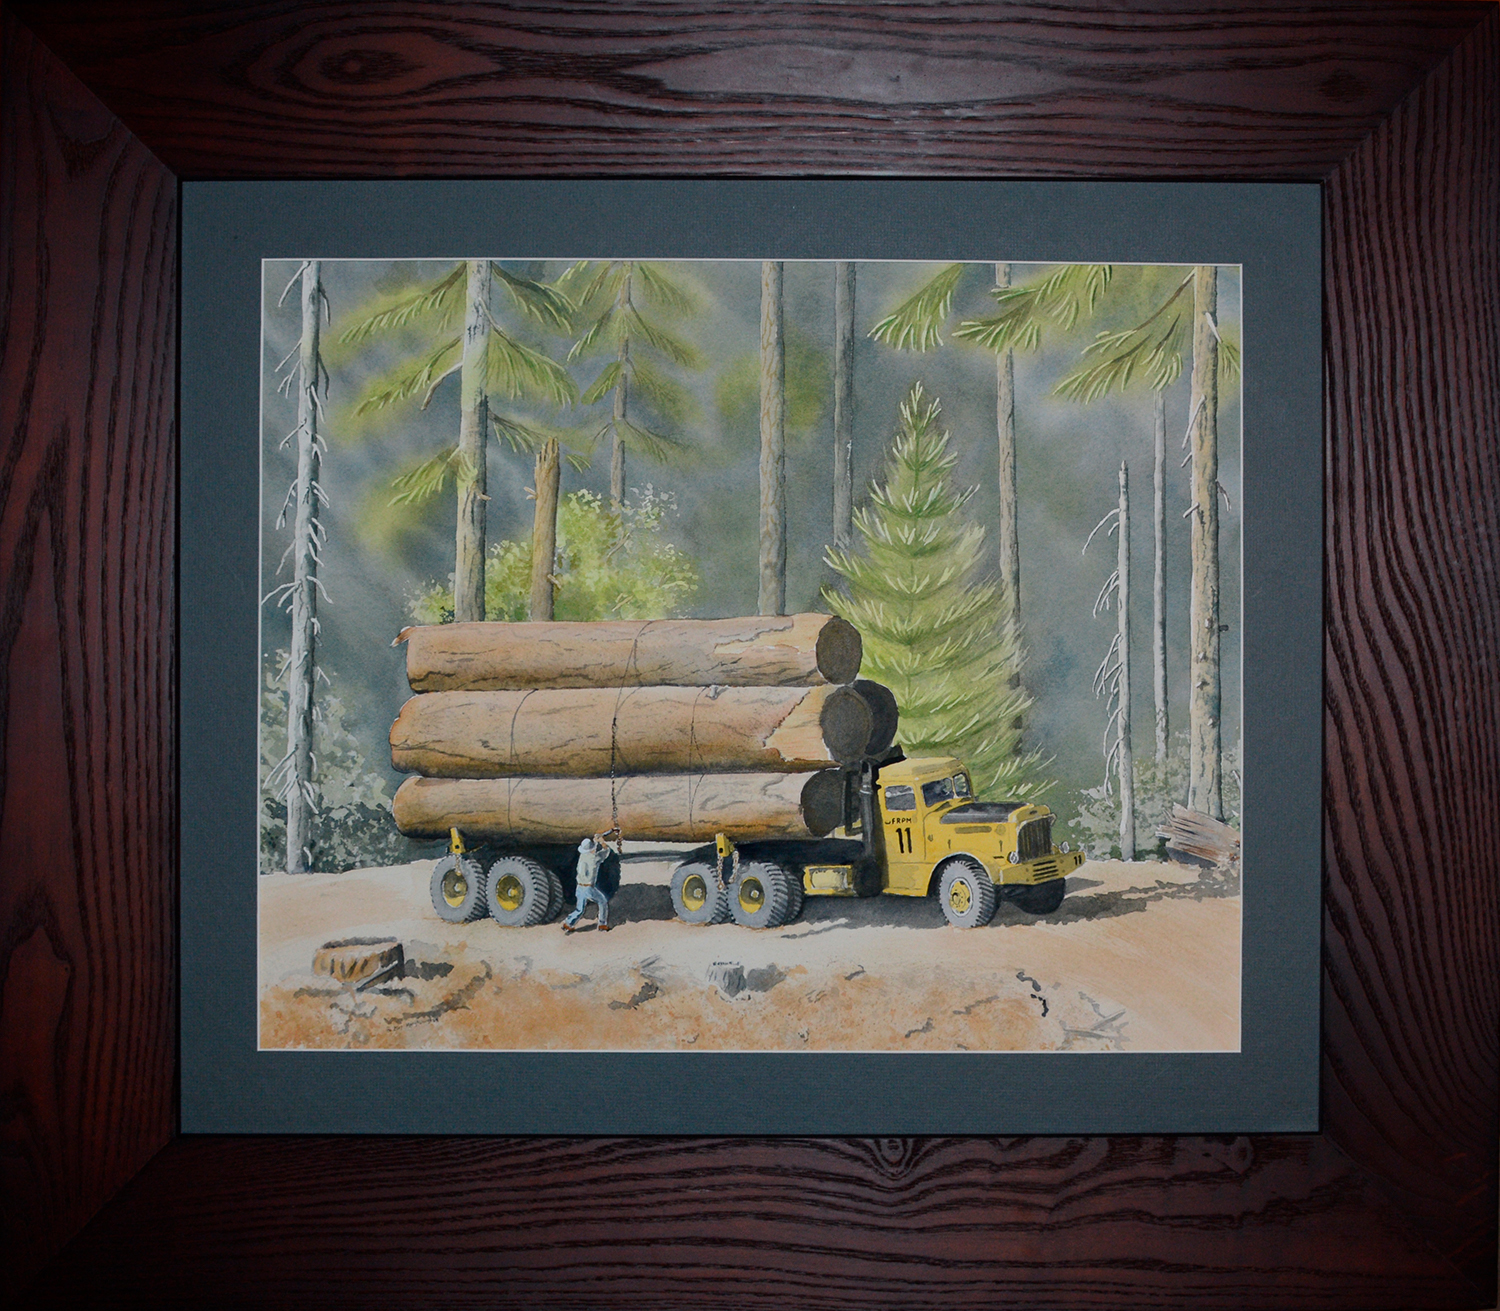 watercolor, MaryA Livingston, sneaking bliss, charity, auction, Sierra Cascade Logging Conference